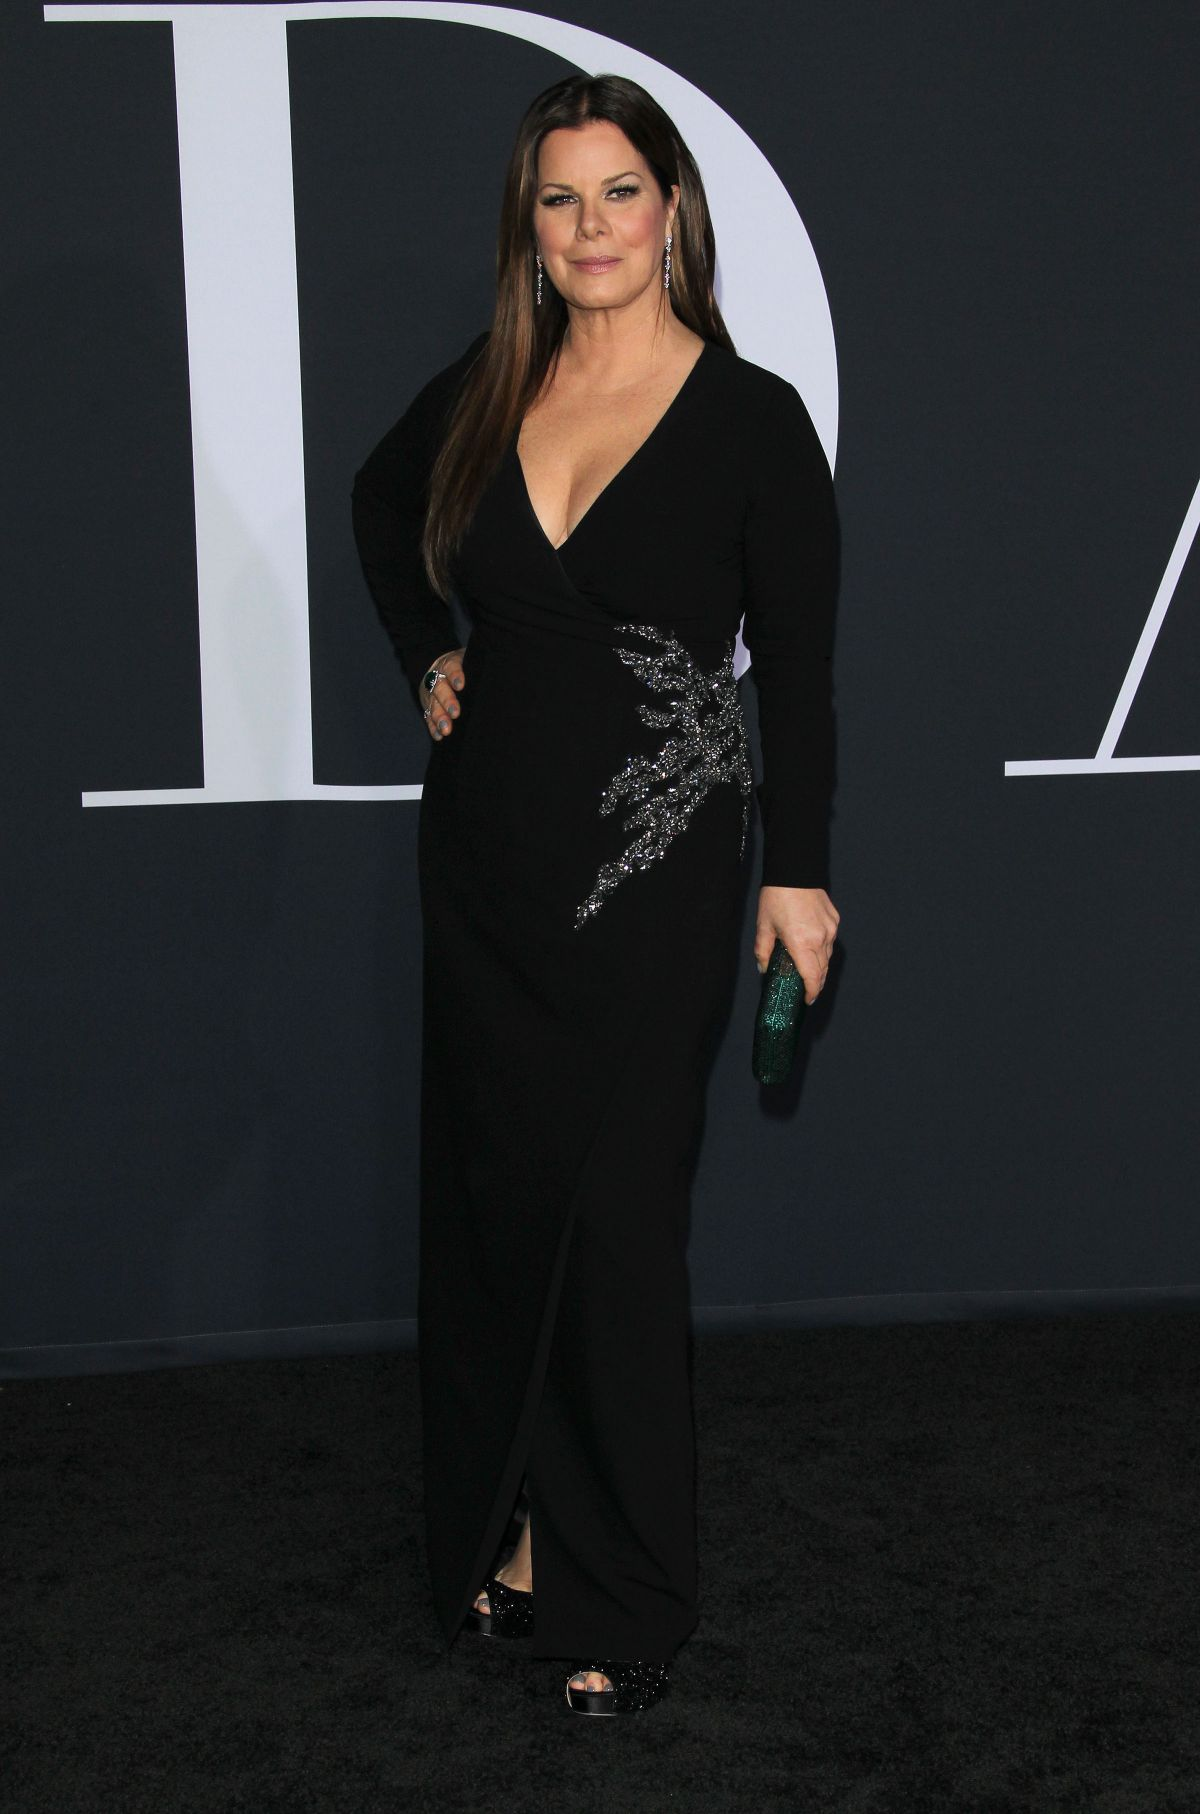 MARCIA GAY HARDEN at 'Fifty Shades Darker' Premiere in Los Angeles 02/02/2017